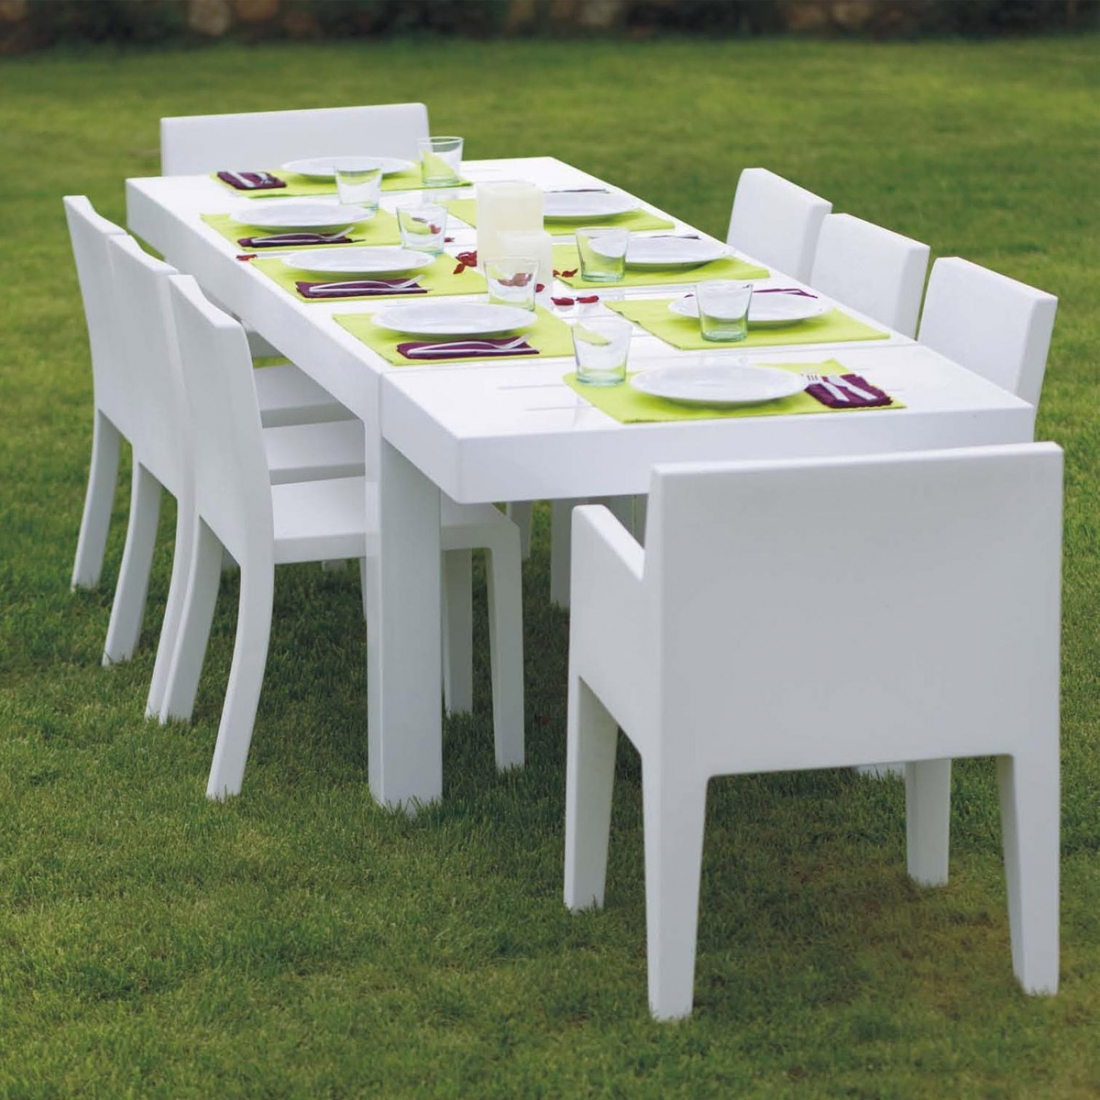 Table de jardin design 10 personnes jut par vondom for Table design 10 personnes